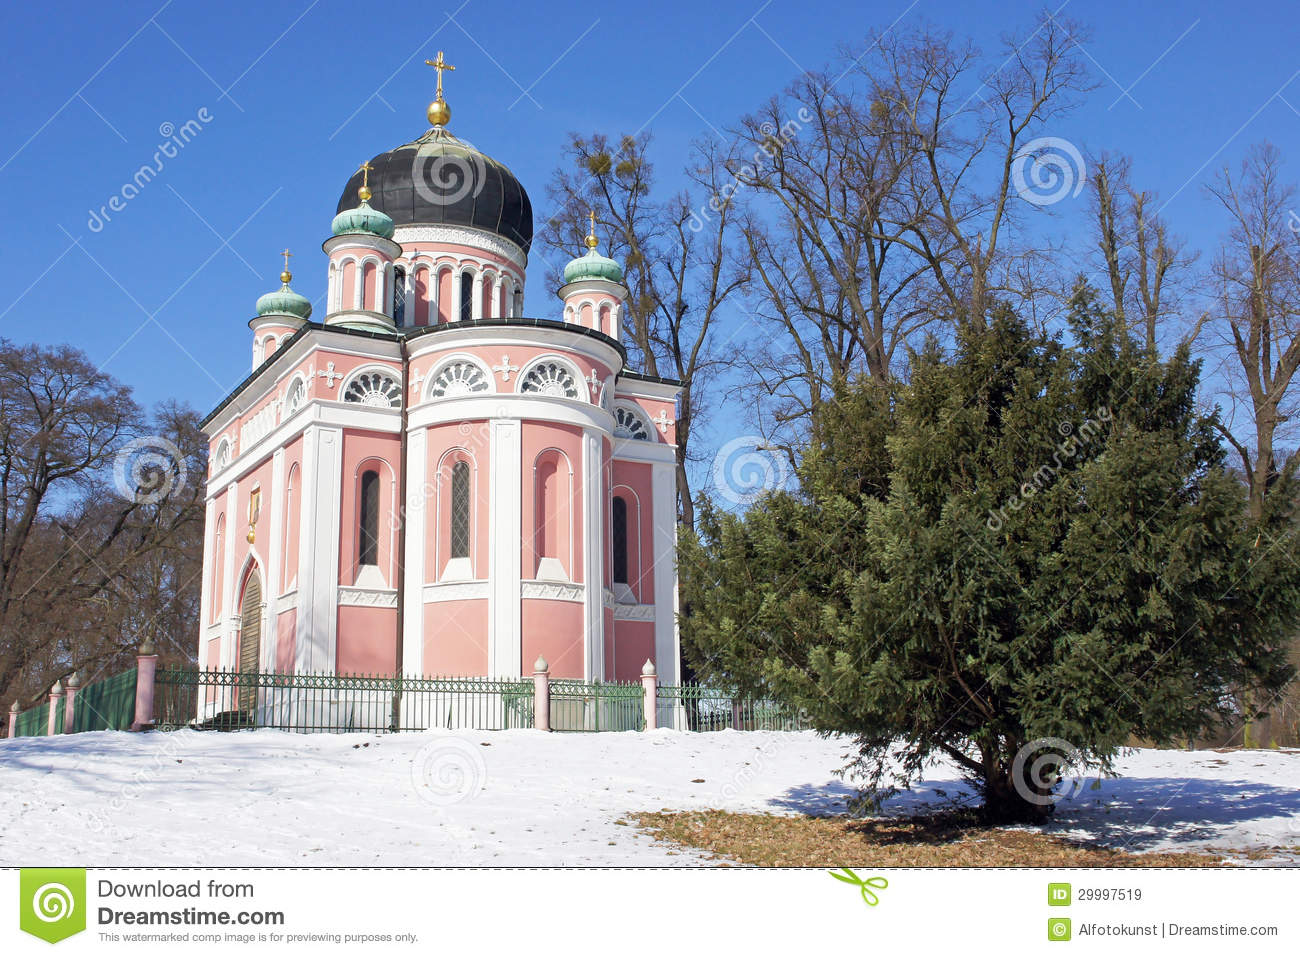 Russisches Viertel Potsdam church potsdam germany royalty free stock images image 29997519